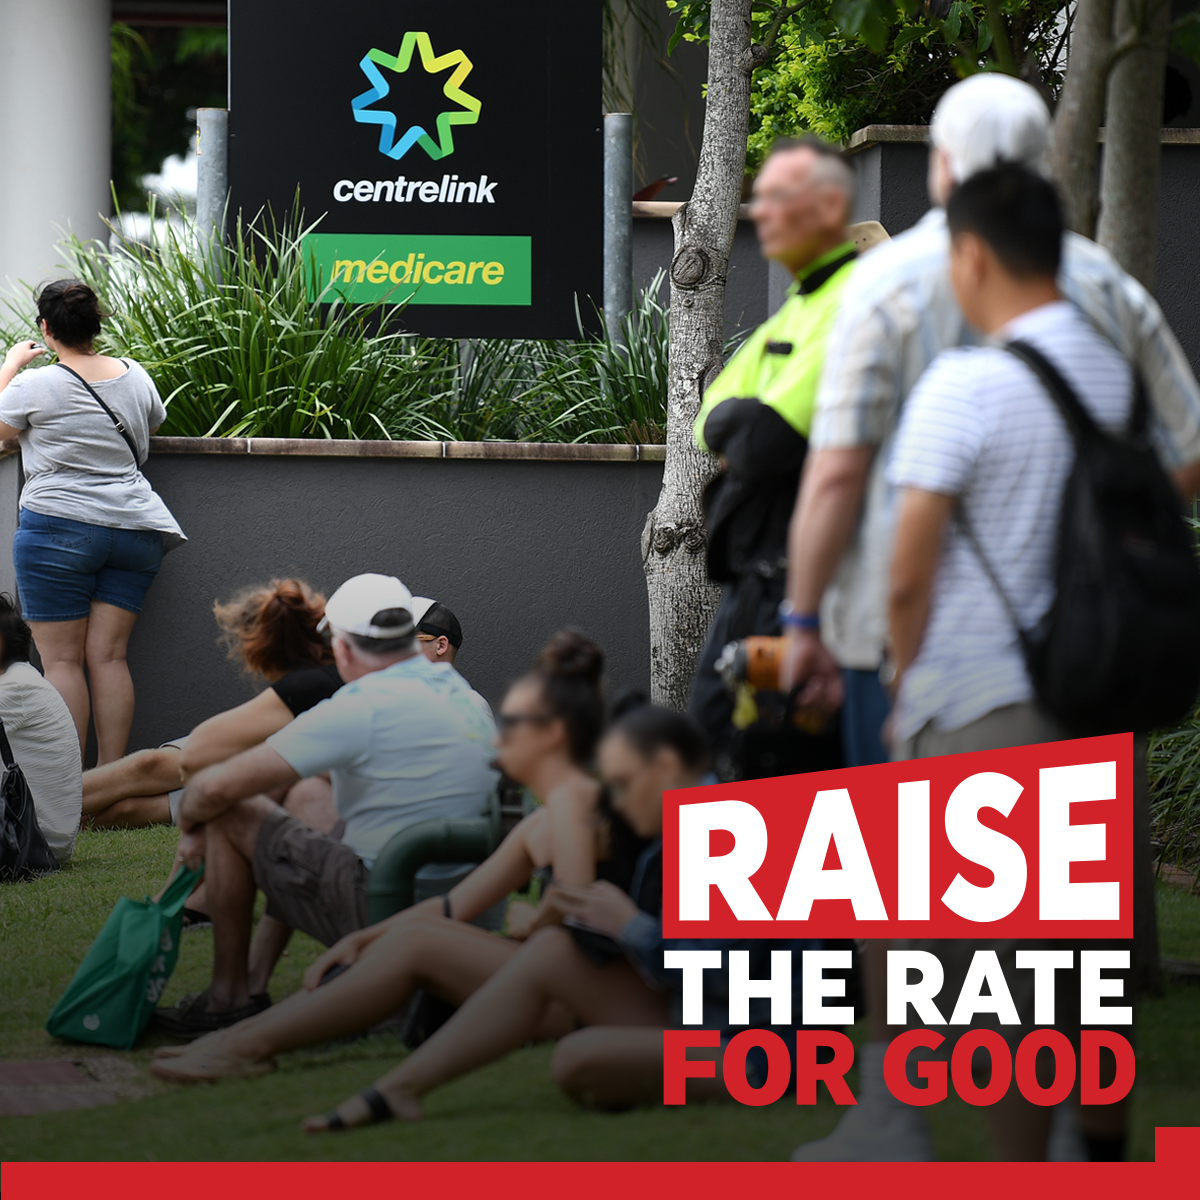 The Parenthood supports the Raise the Rate for Good campaign